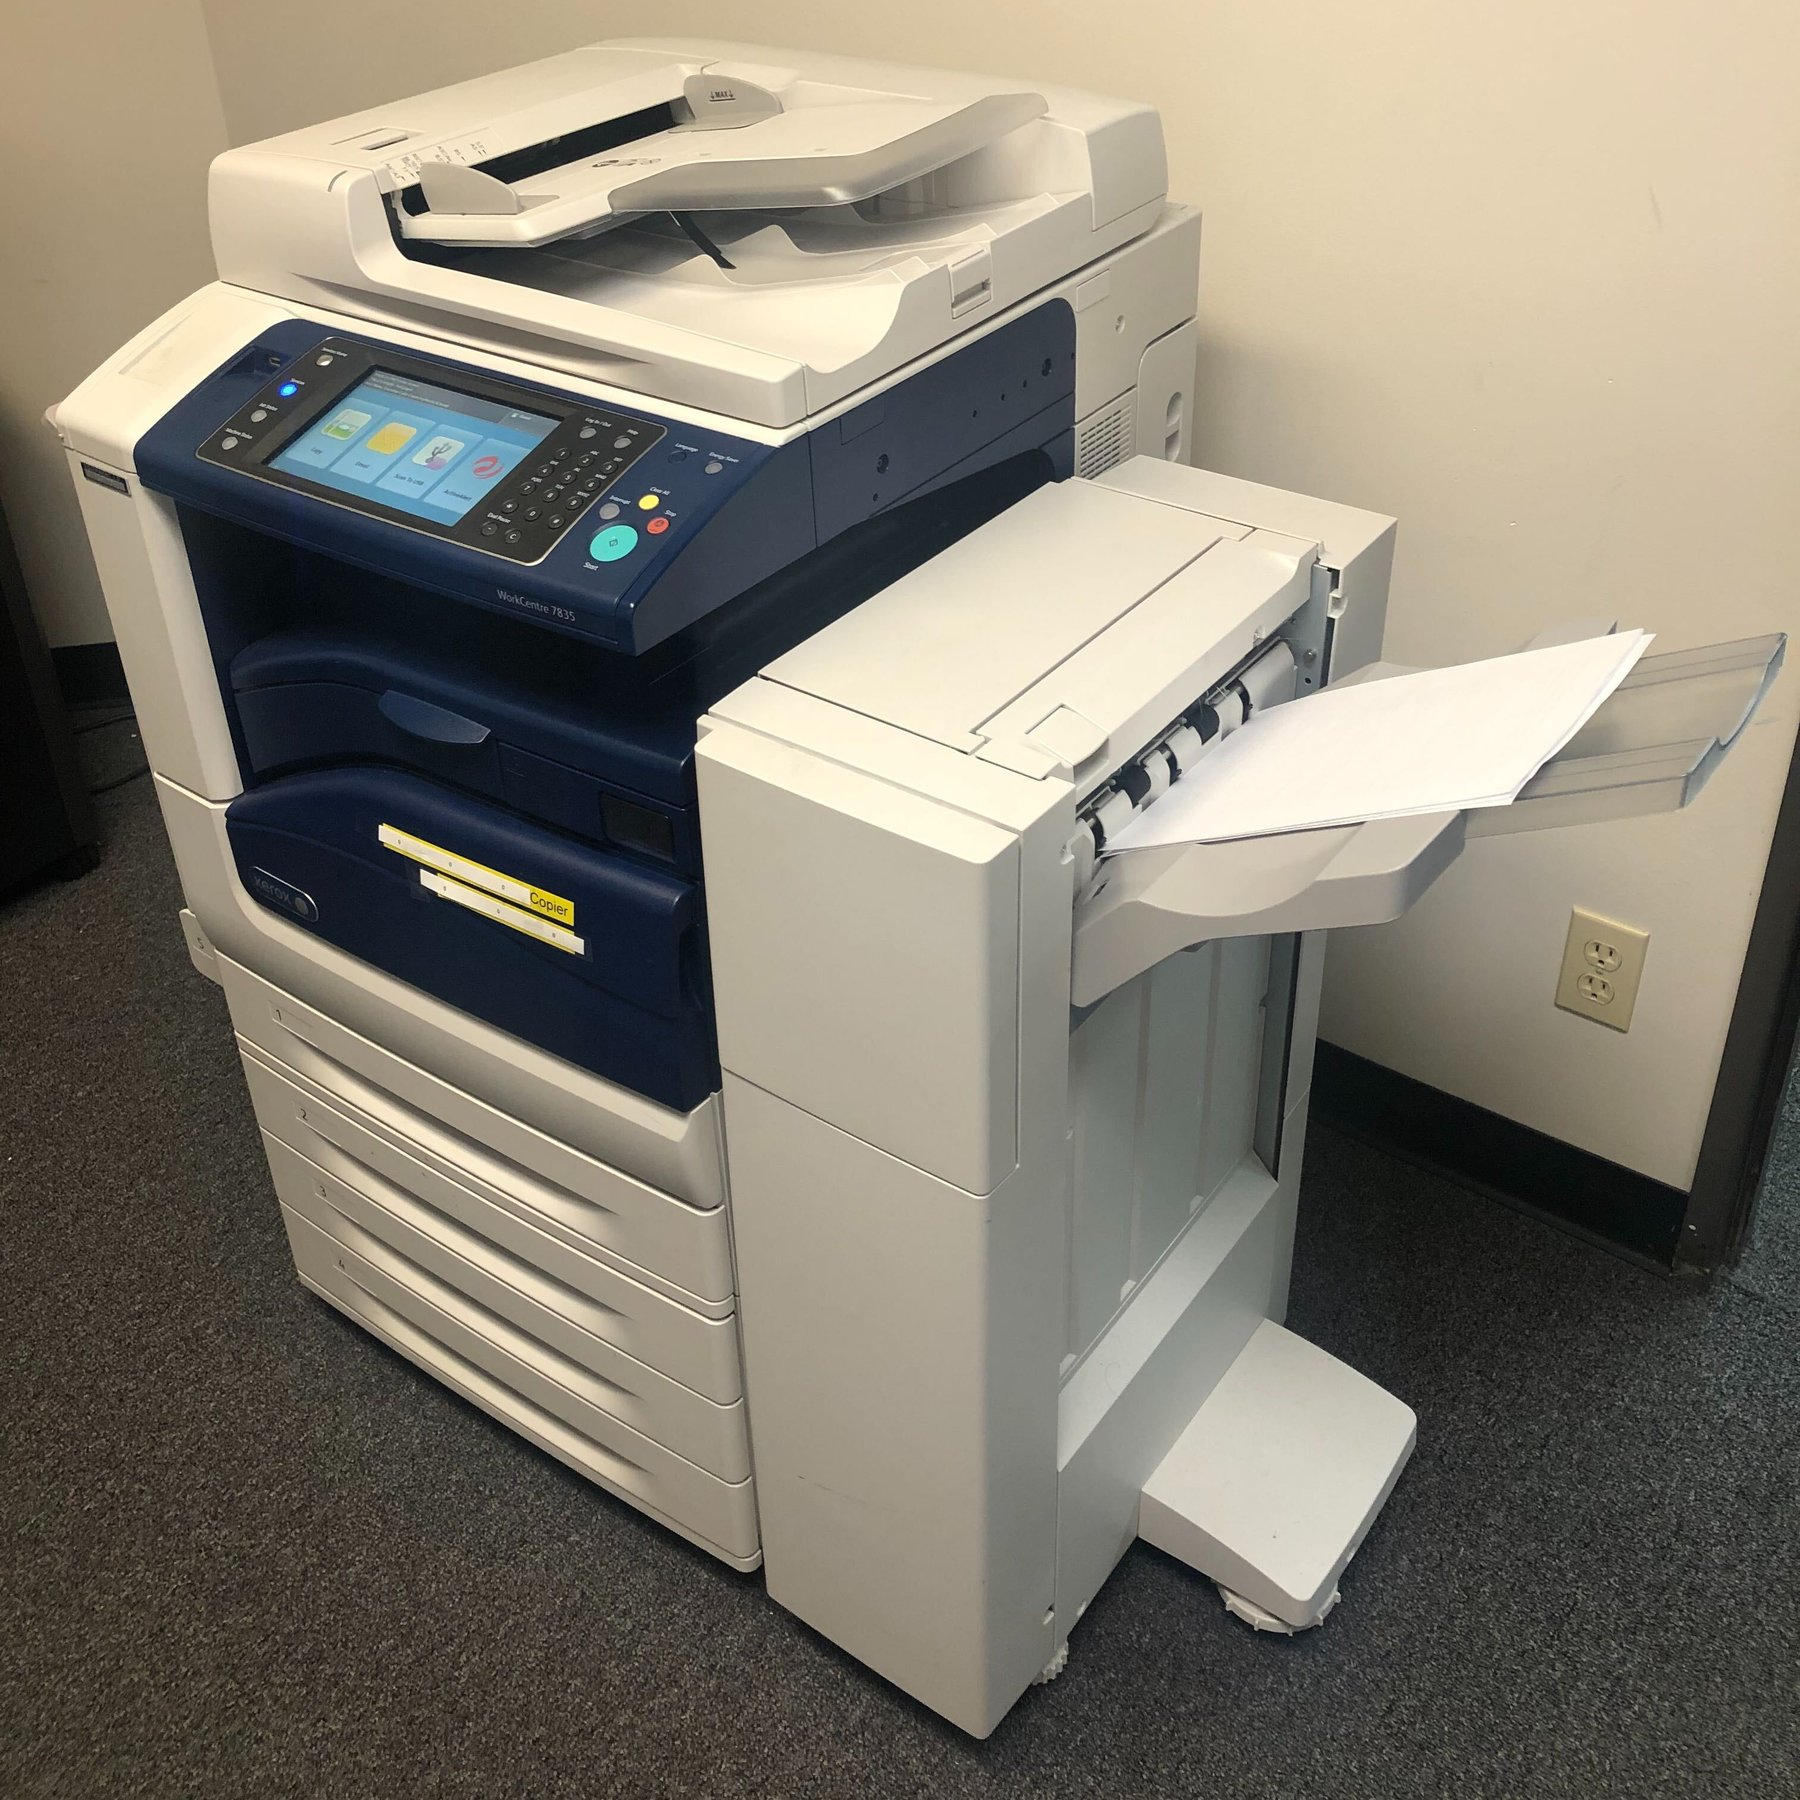 Fax machines, old tech slow COVID-19 test results and data reporting